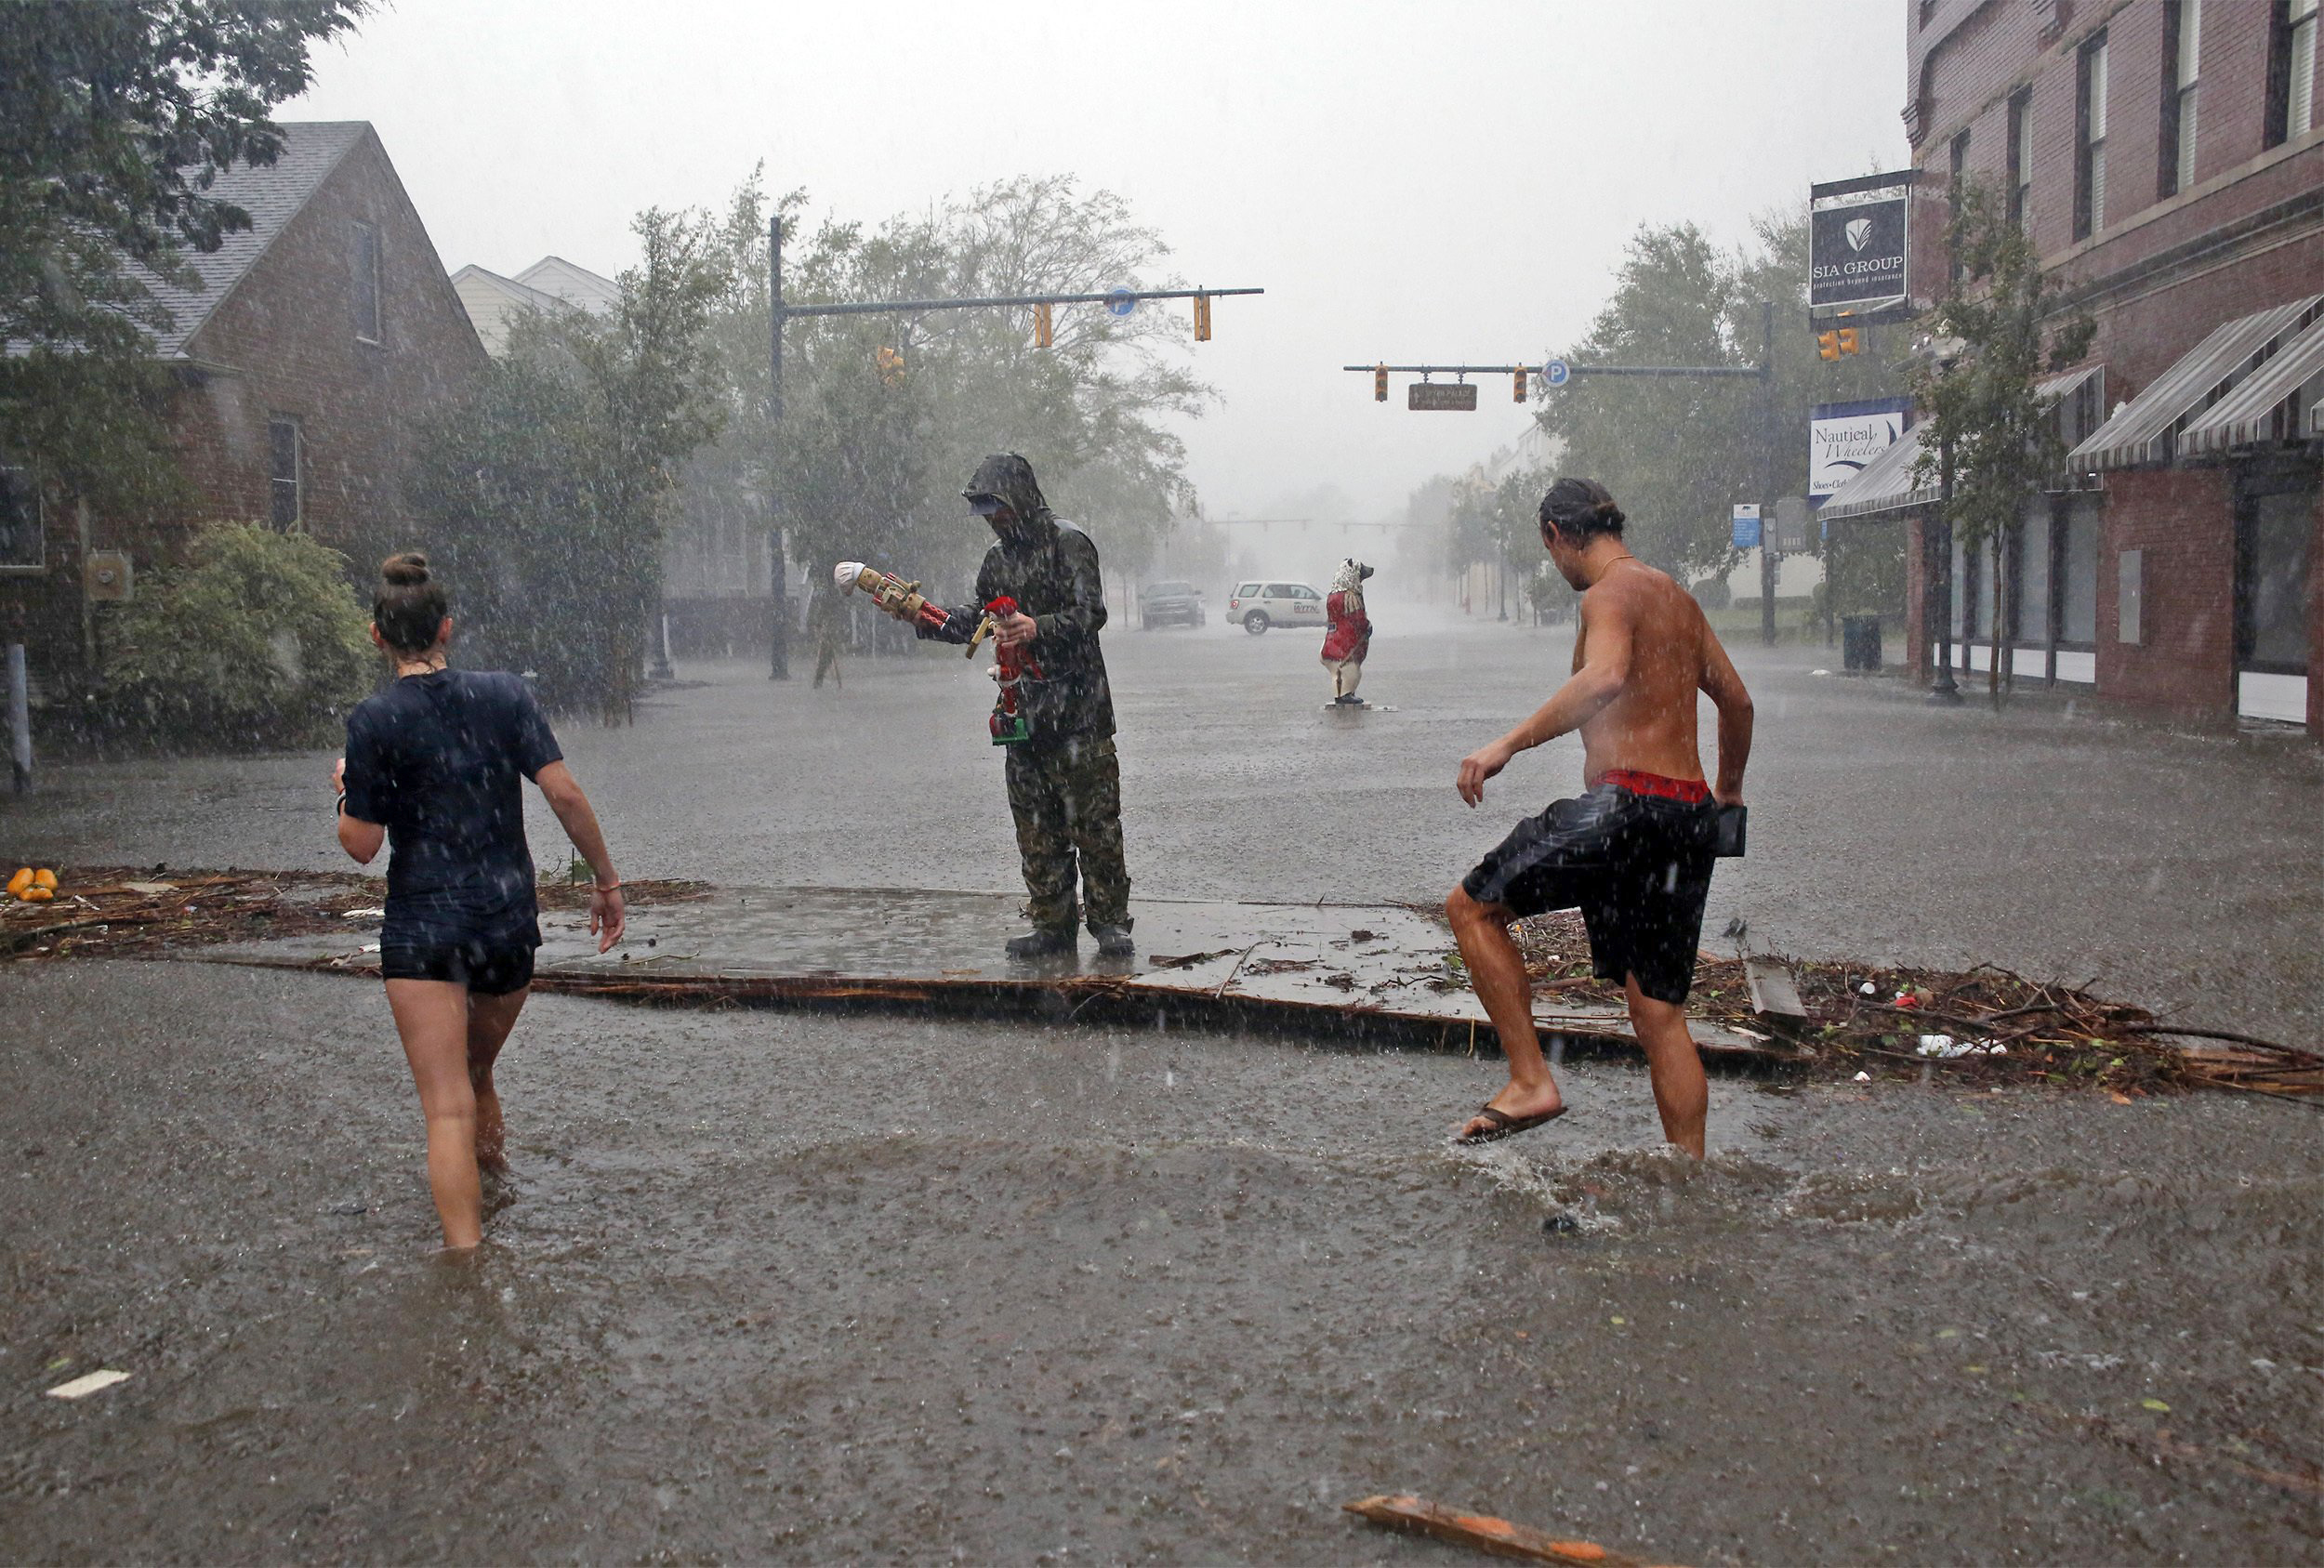 Hundreds rescued, many still trapped in New Bern, N.C., as city is